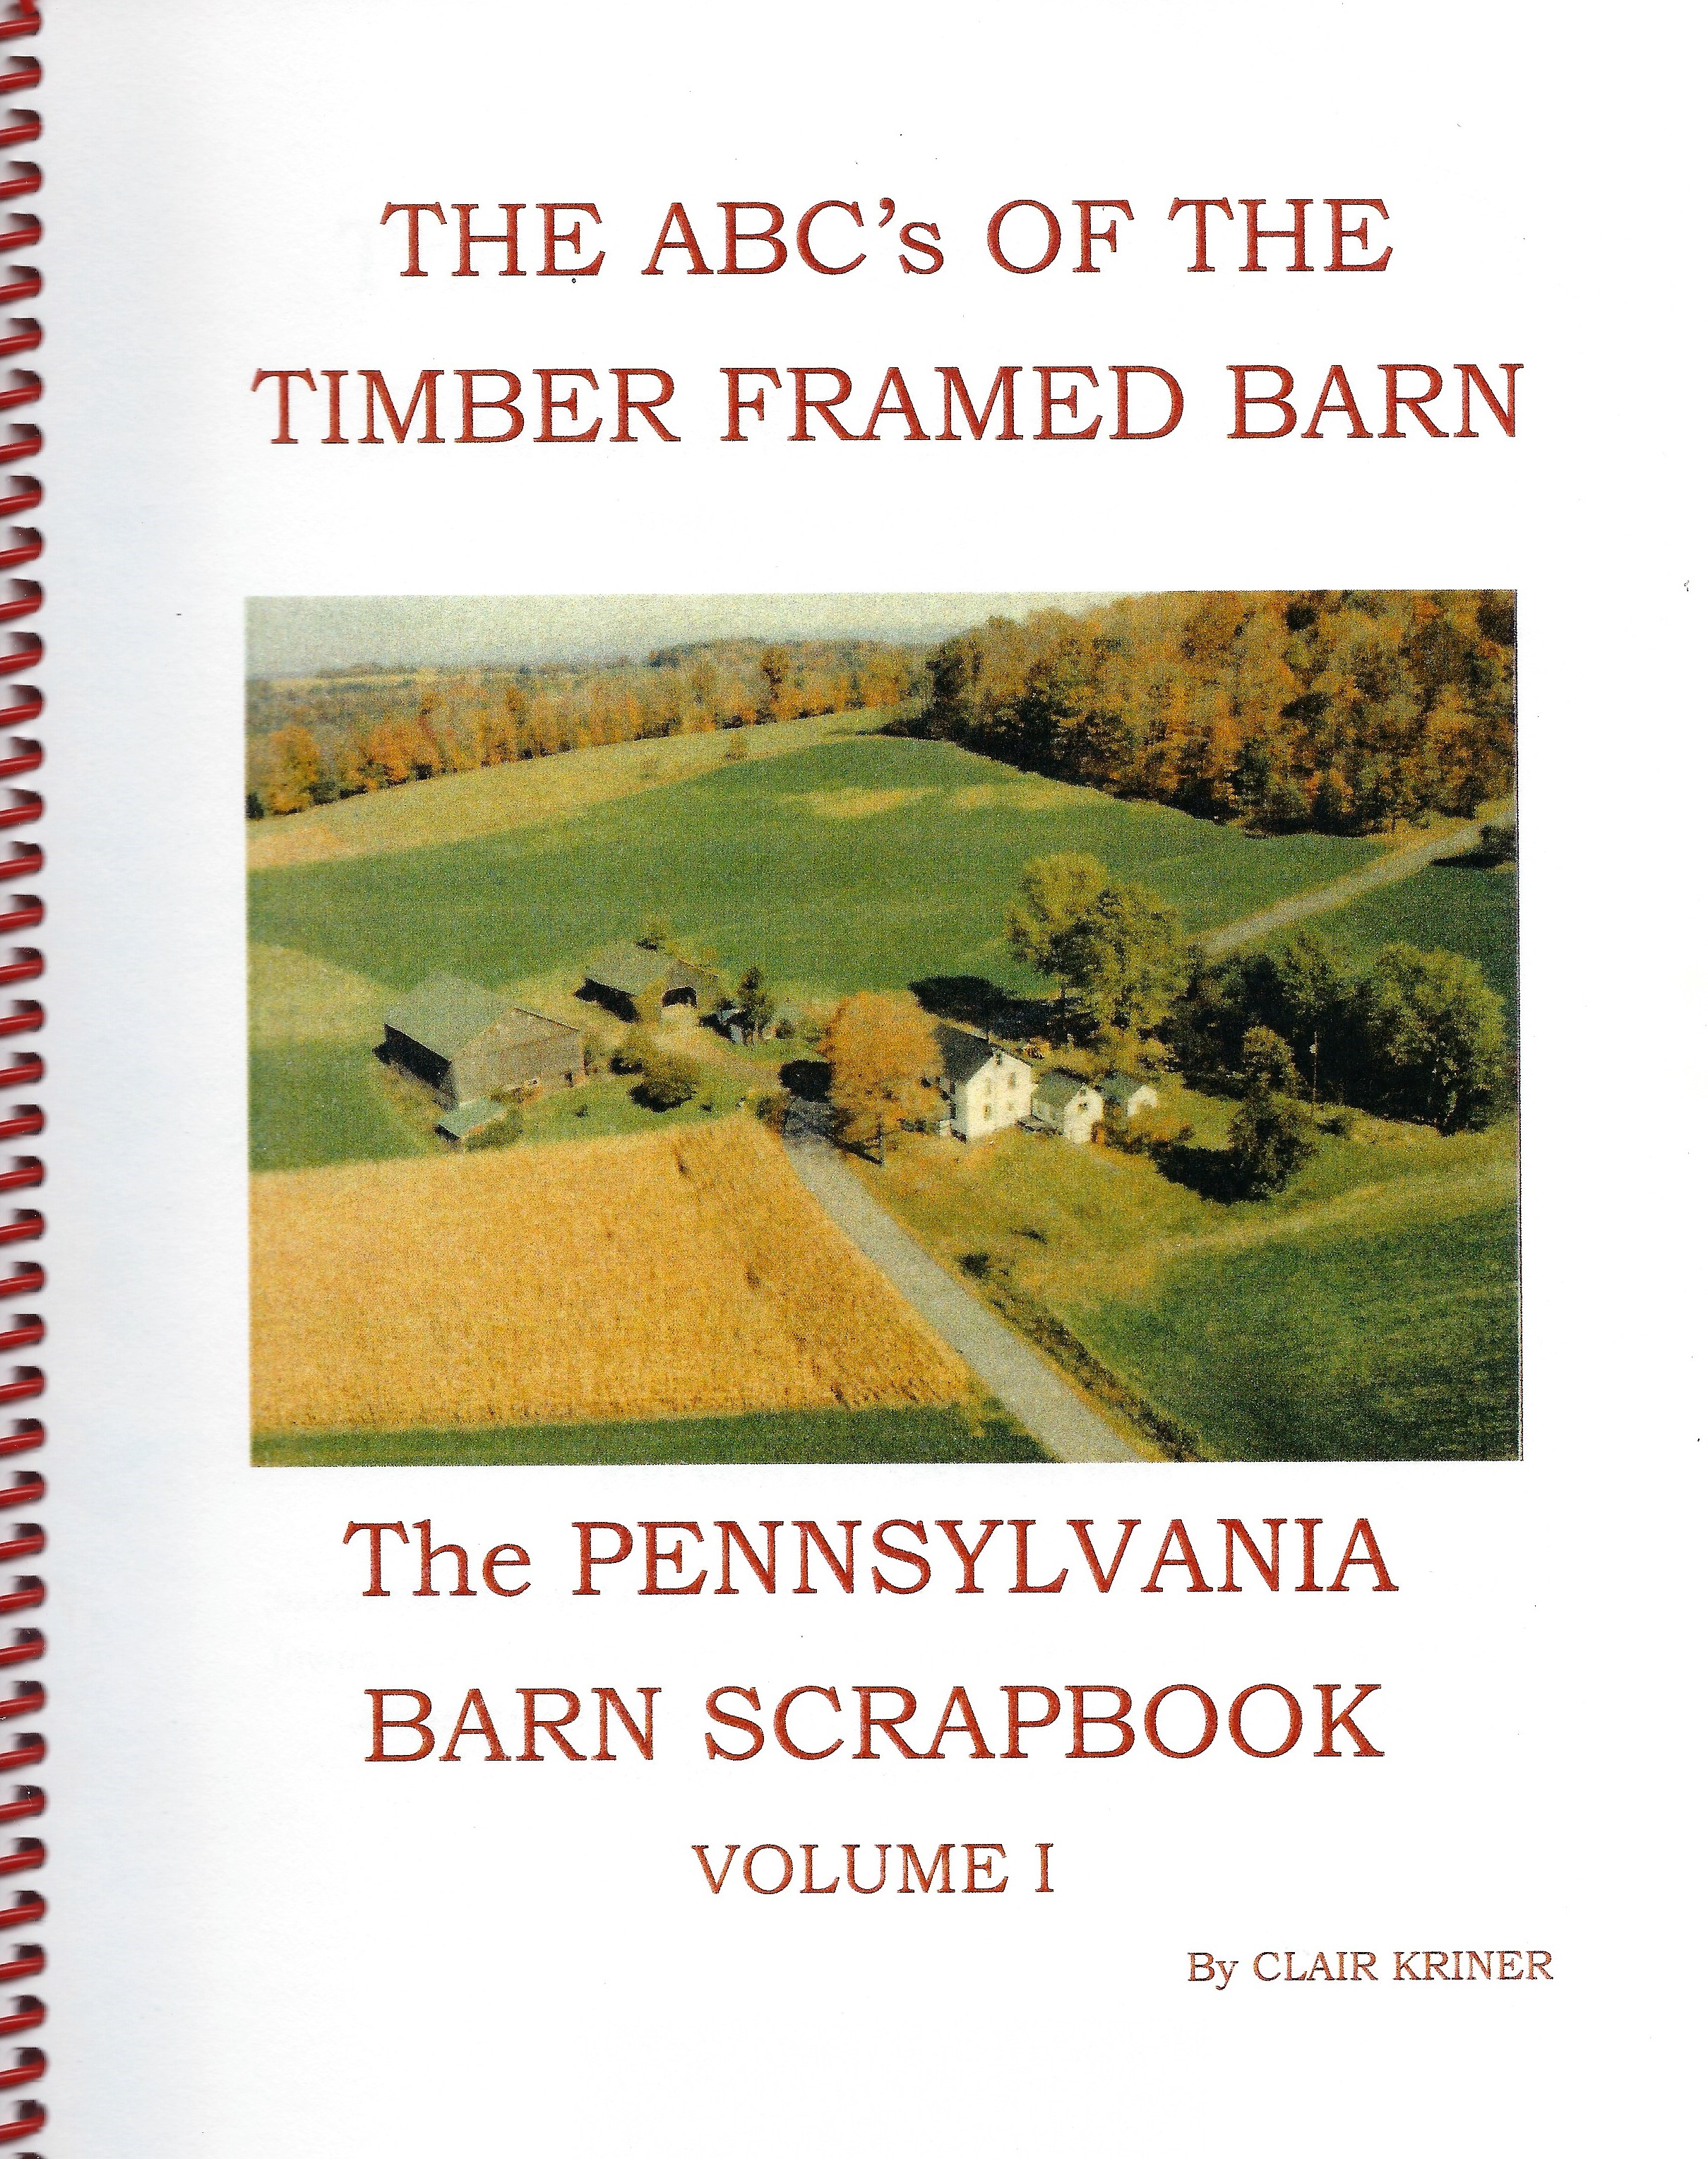 ABC's Of The Timber Framed Barn